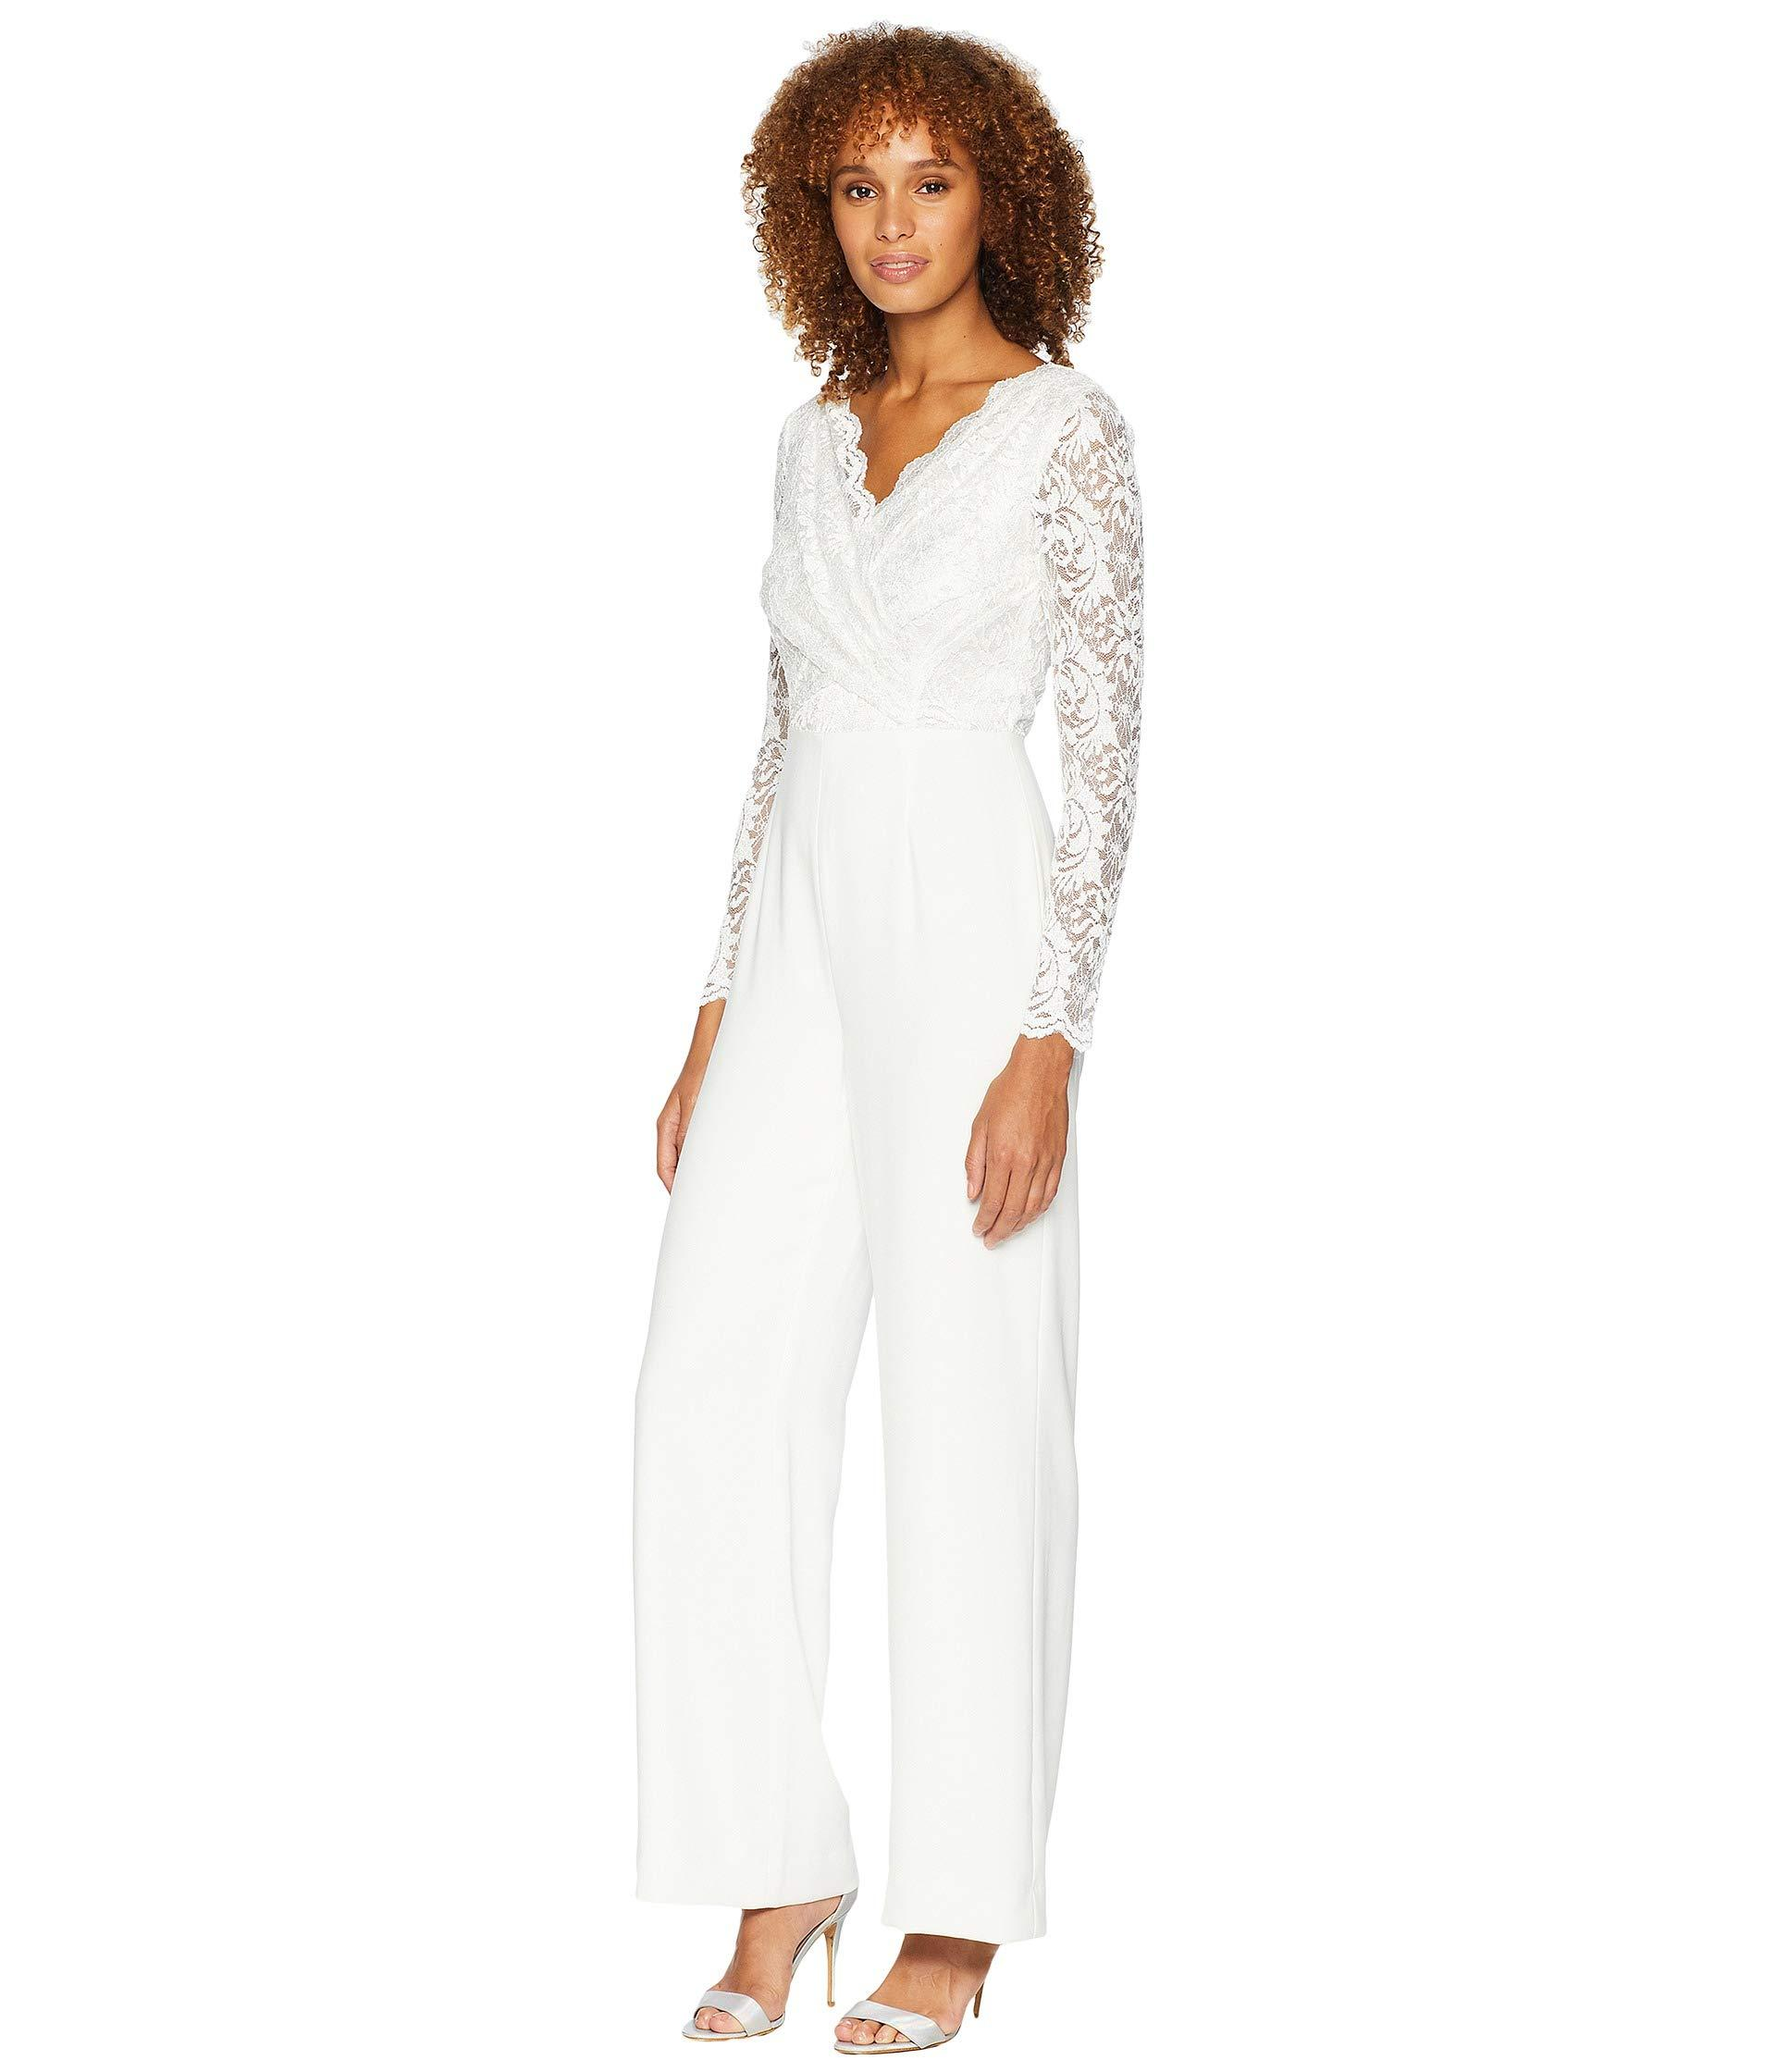 345c206449 Lyst - Tahari Long Sleeve Crepe sequin Lace Jumpsuit With V-neckline in  White - Save 38%